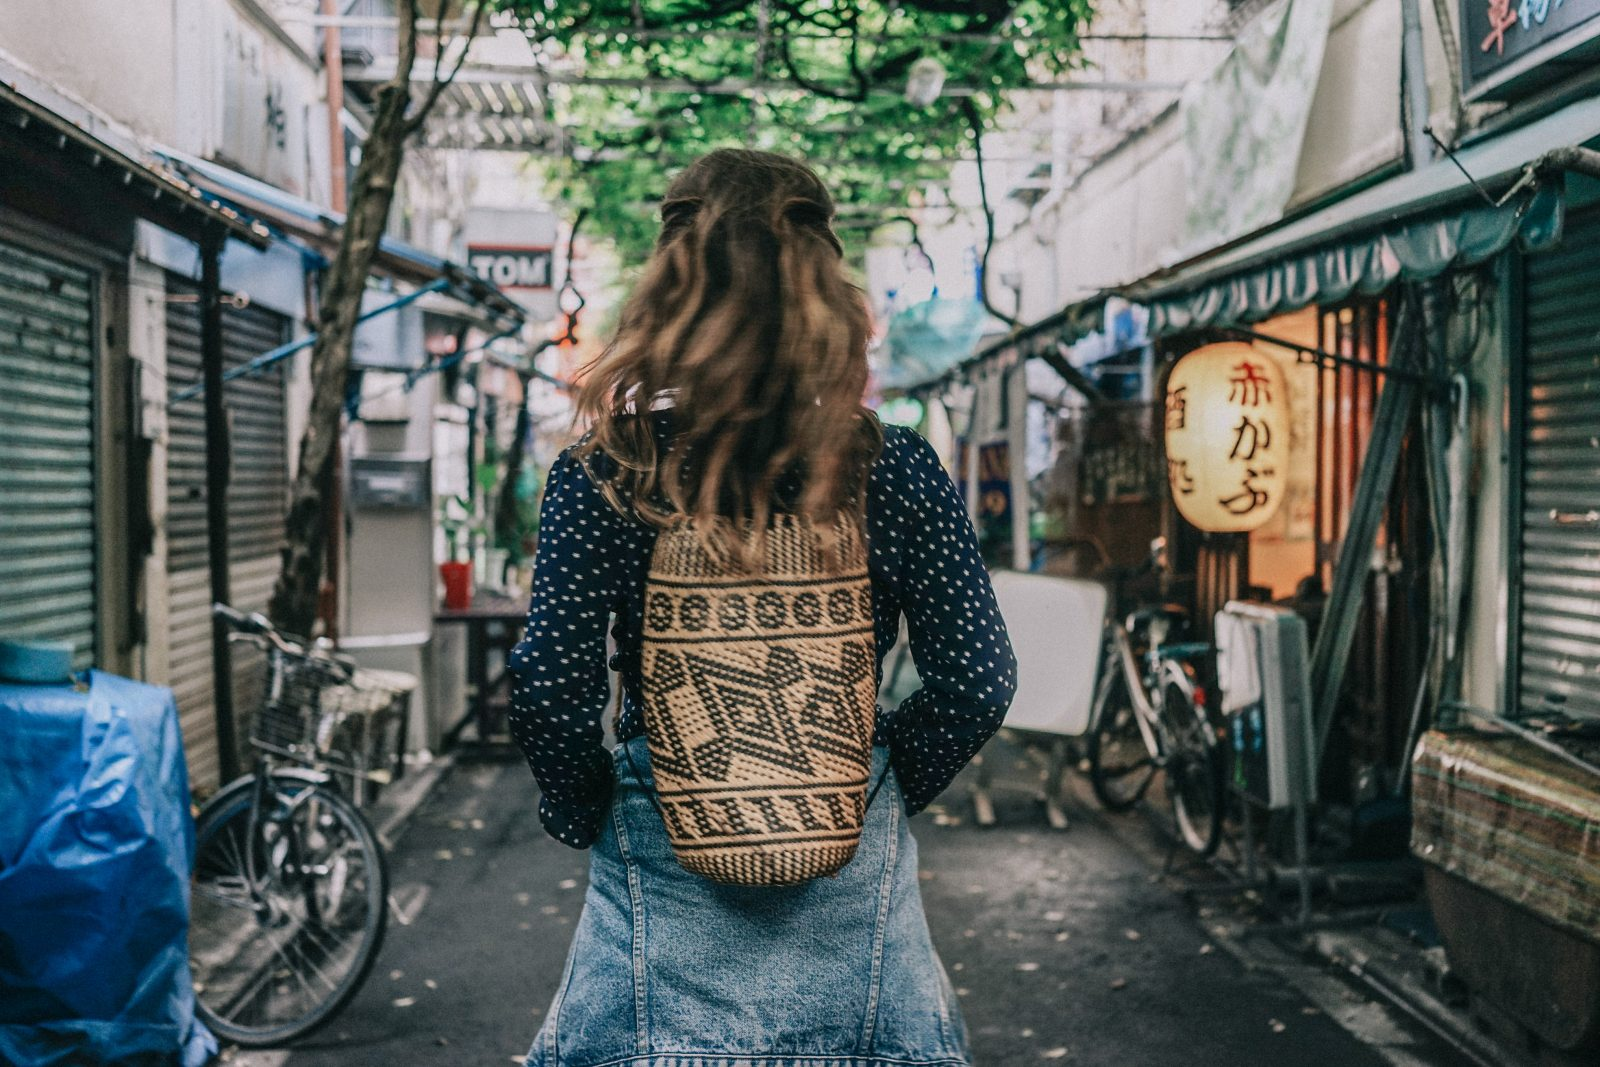 Tokyo_Travel_Guide-Outfit-Collage_Vintage-Street_Style-Reformation_Shorts-Realisation_Par_Stars_Blouse-Sneakers-Flea_Market_Backpack-98